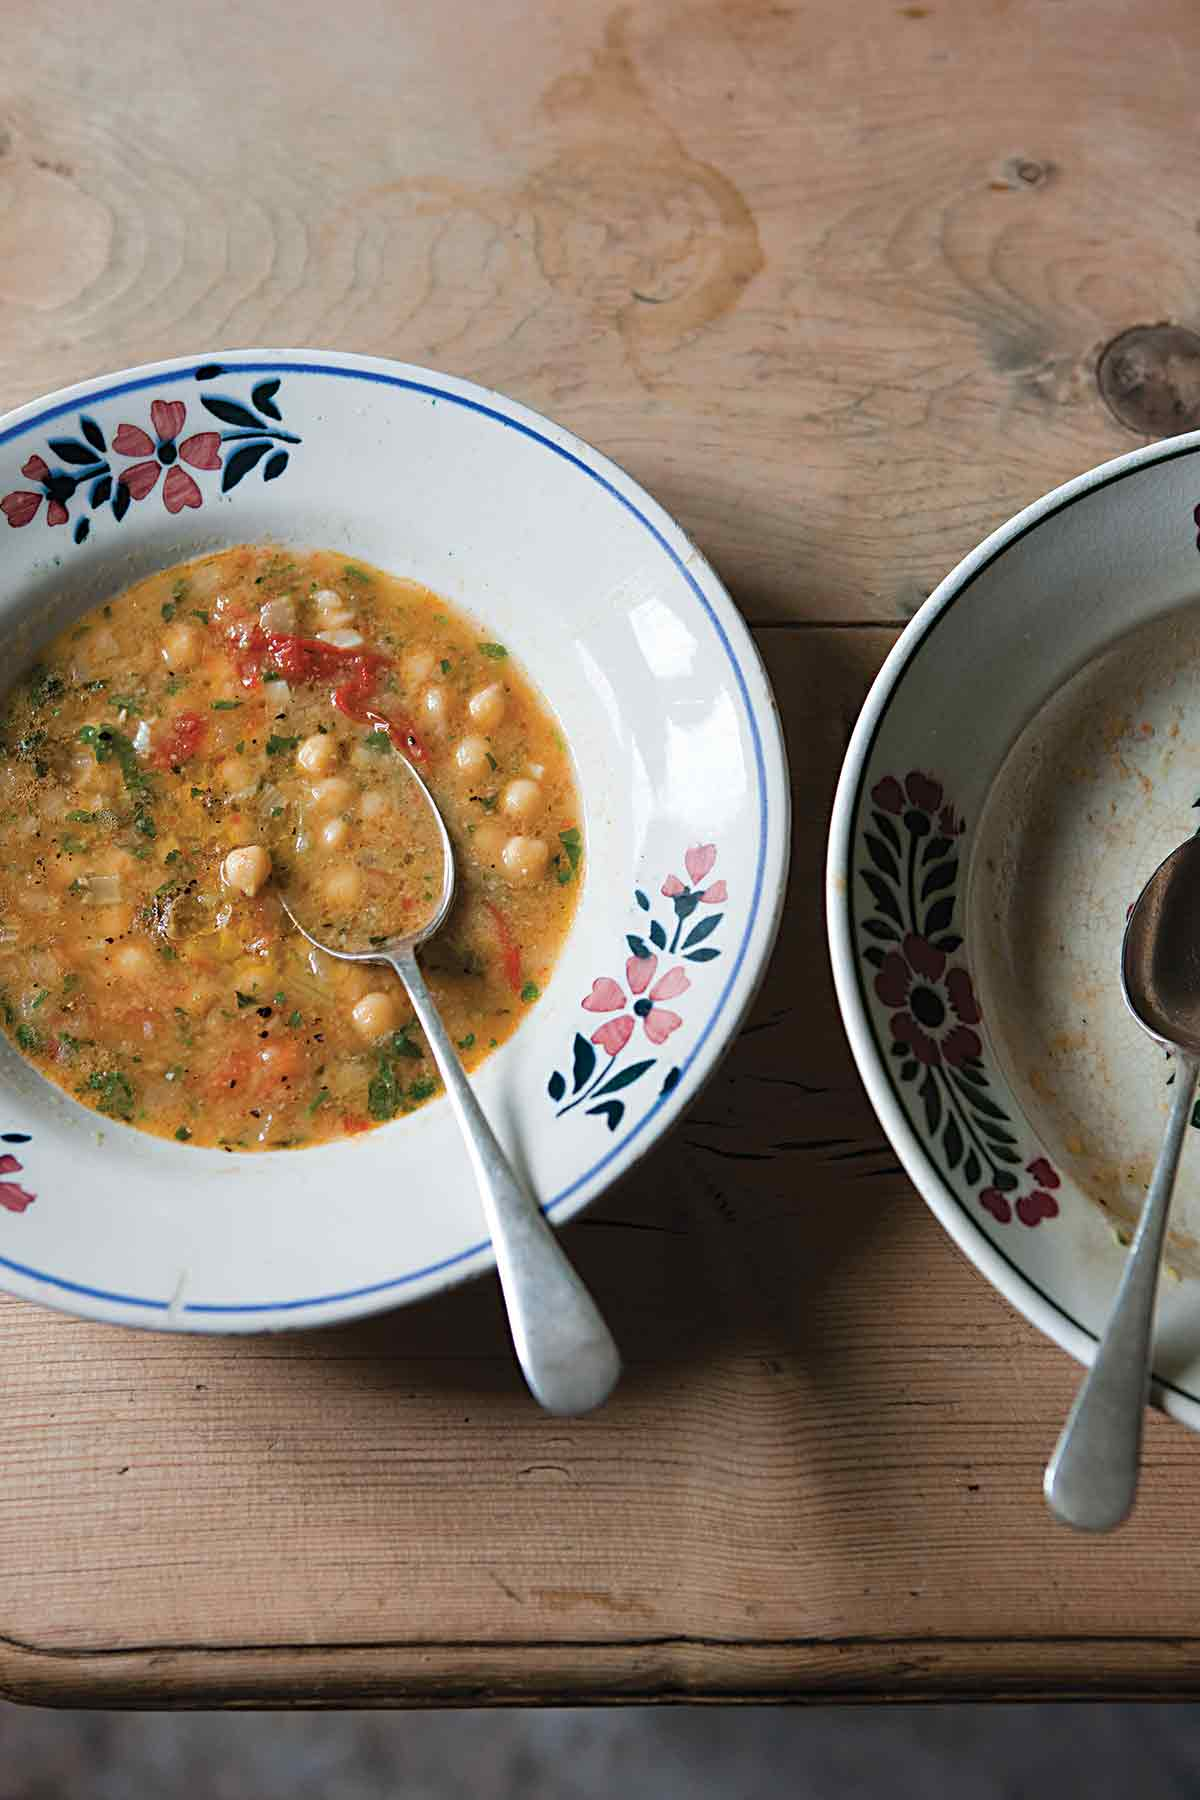 Two bowls, one filled with smoked paprika and chickpea soup, with a spoon resting inside, and the other bowl empty.